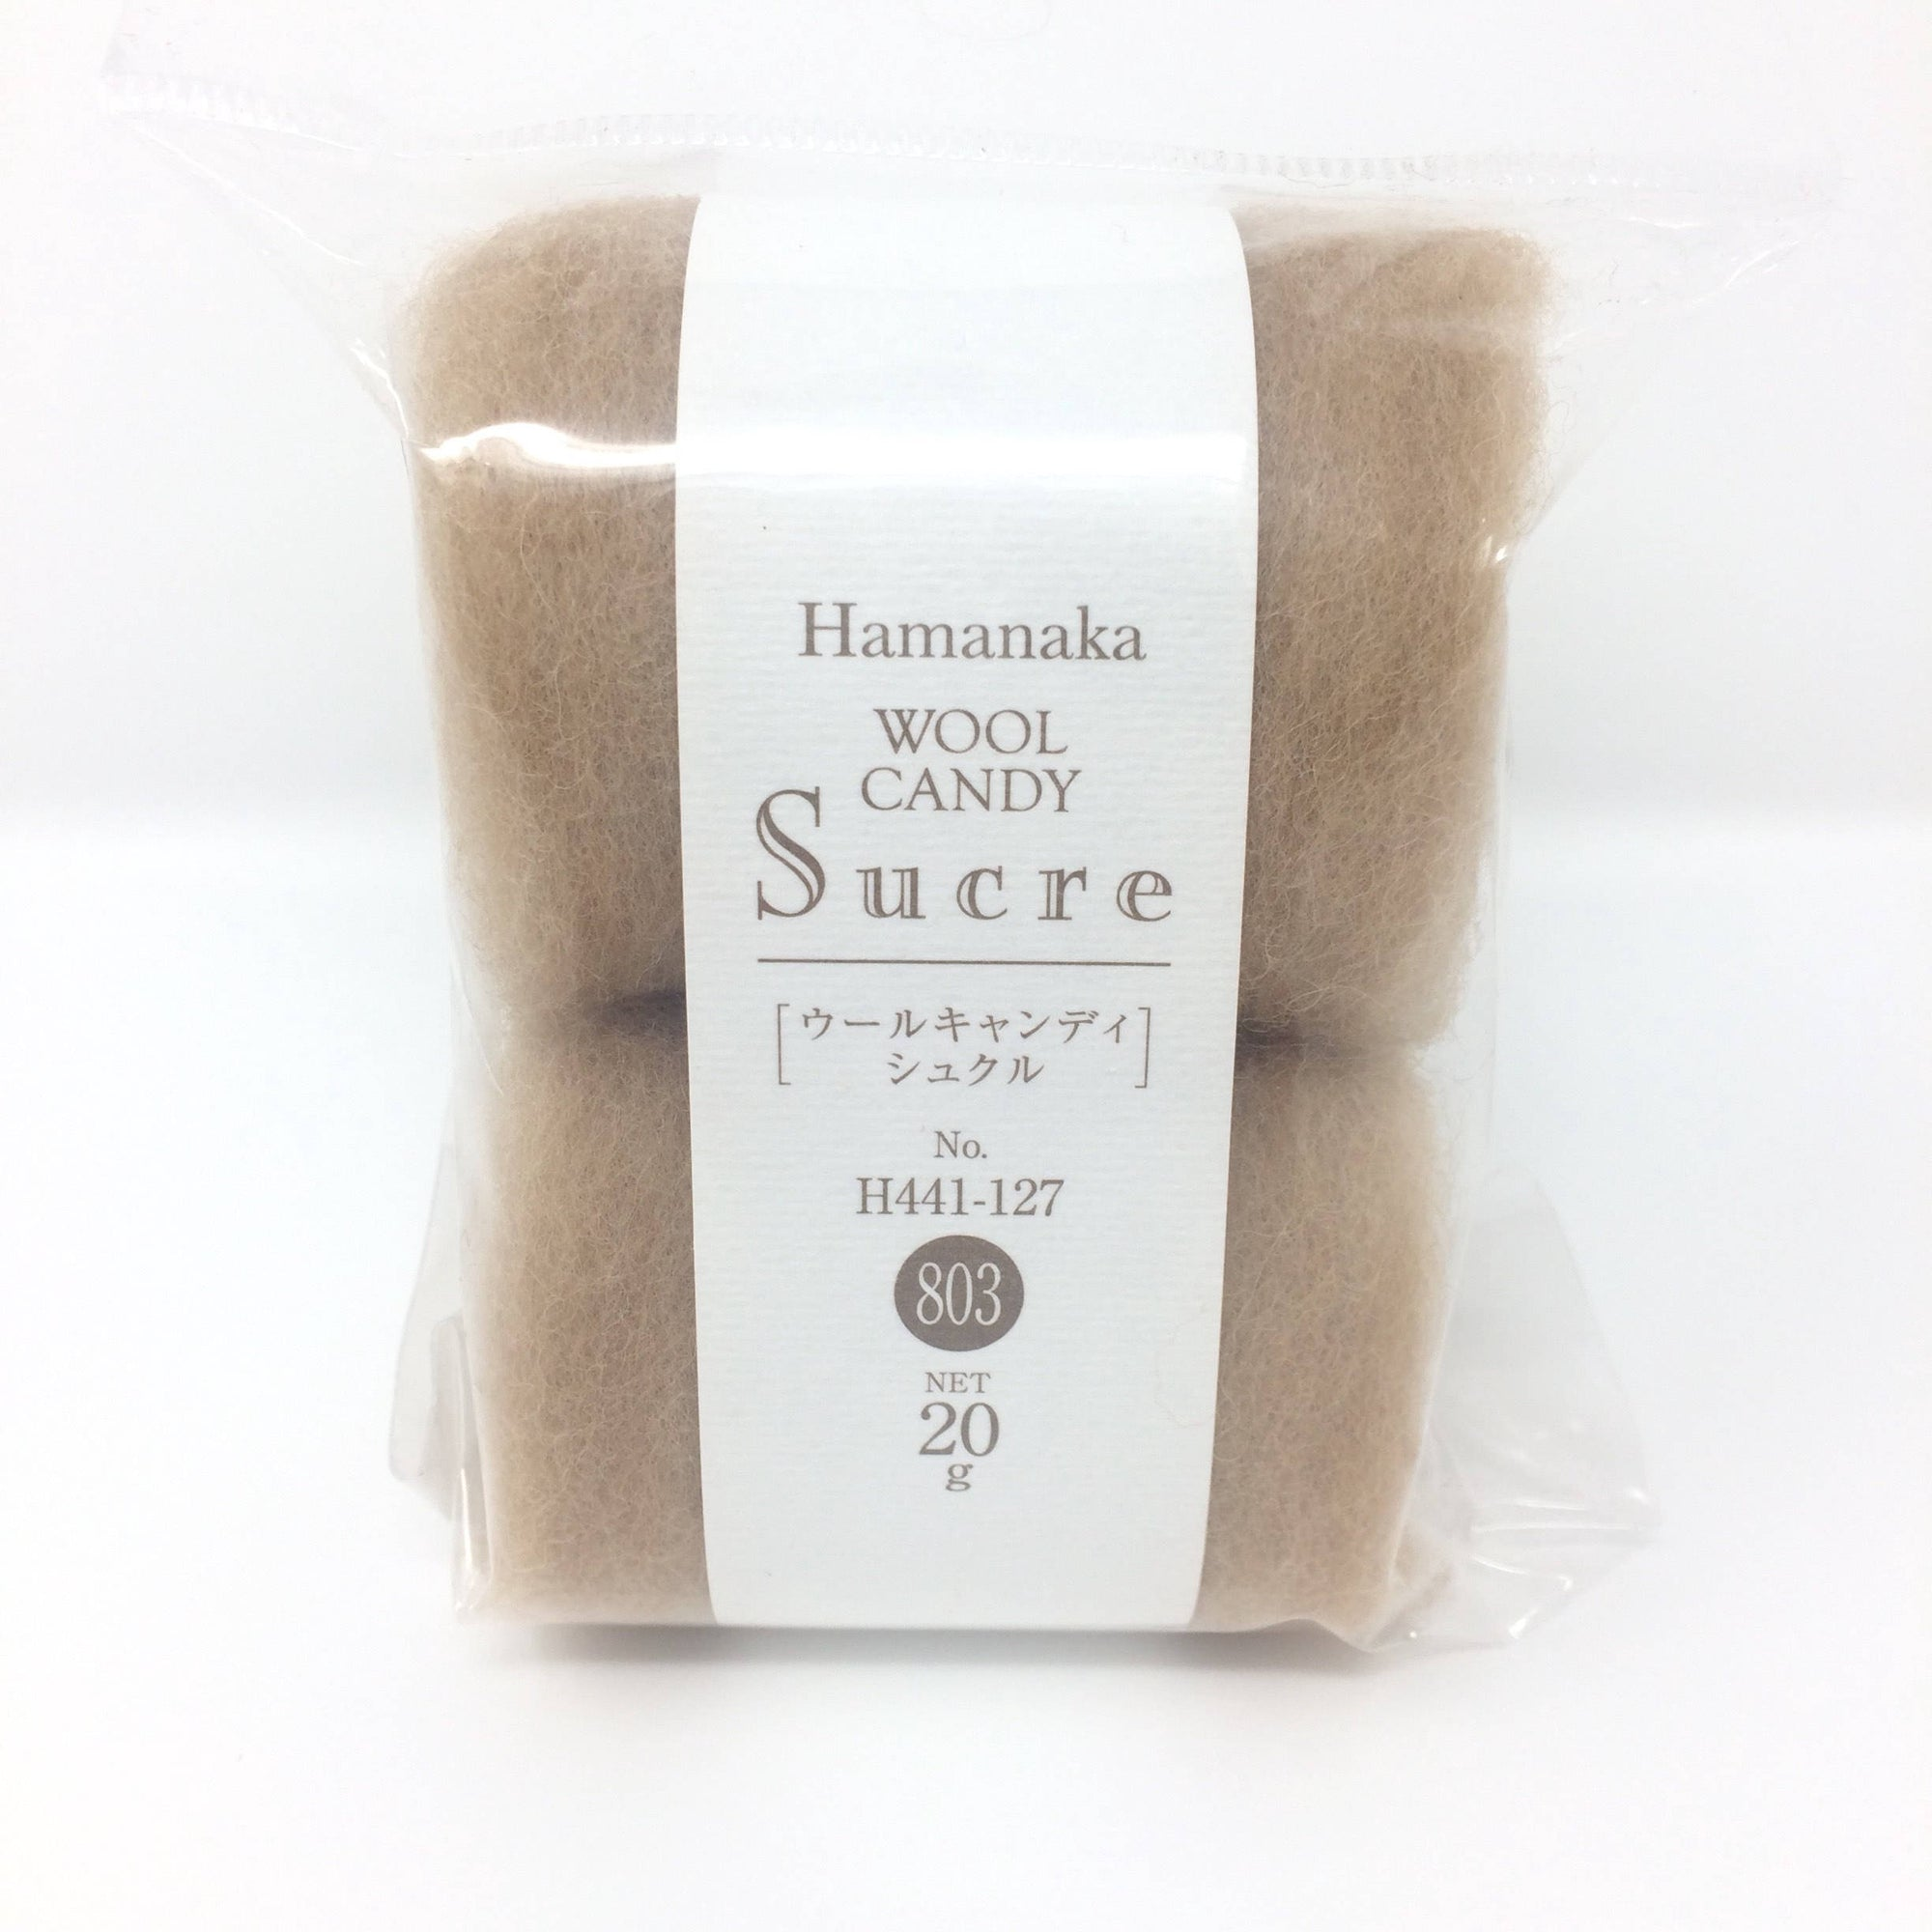 Hamanaka Wool Candy Sucre - Natural Light Brown 20g